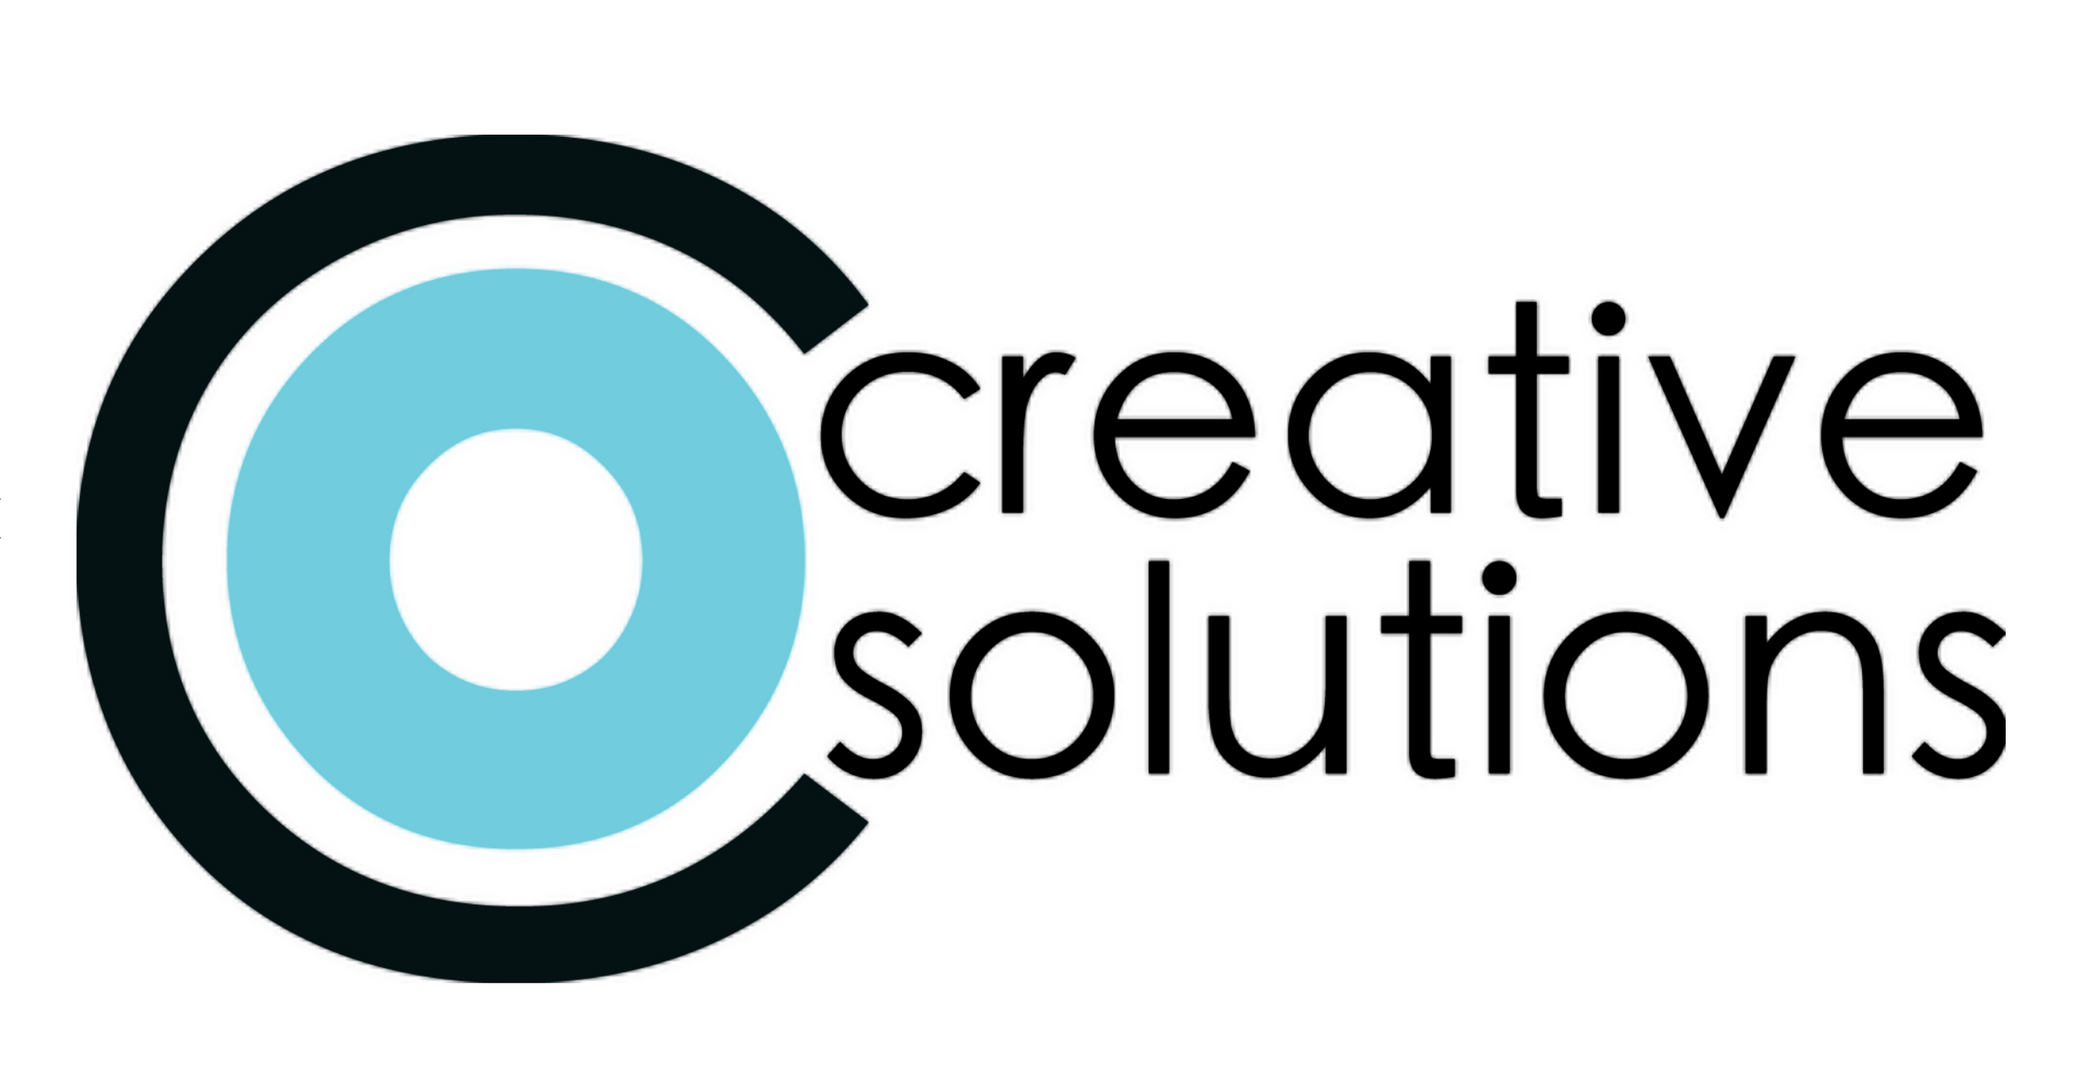 Creative Solutions - 2011